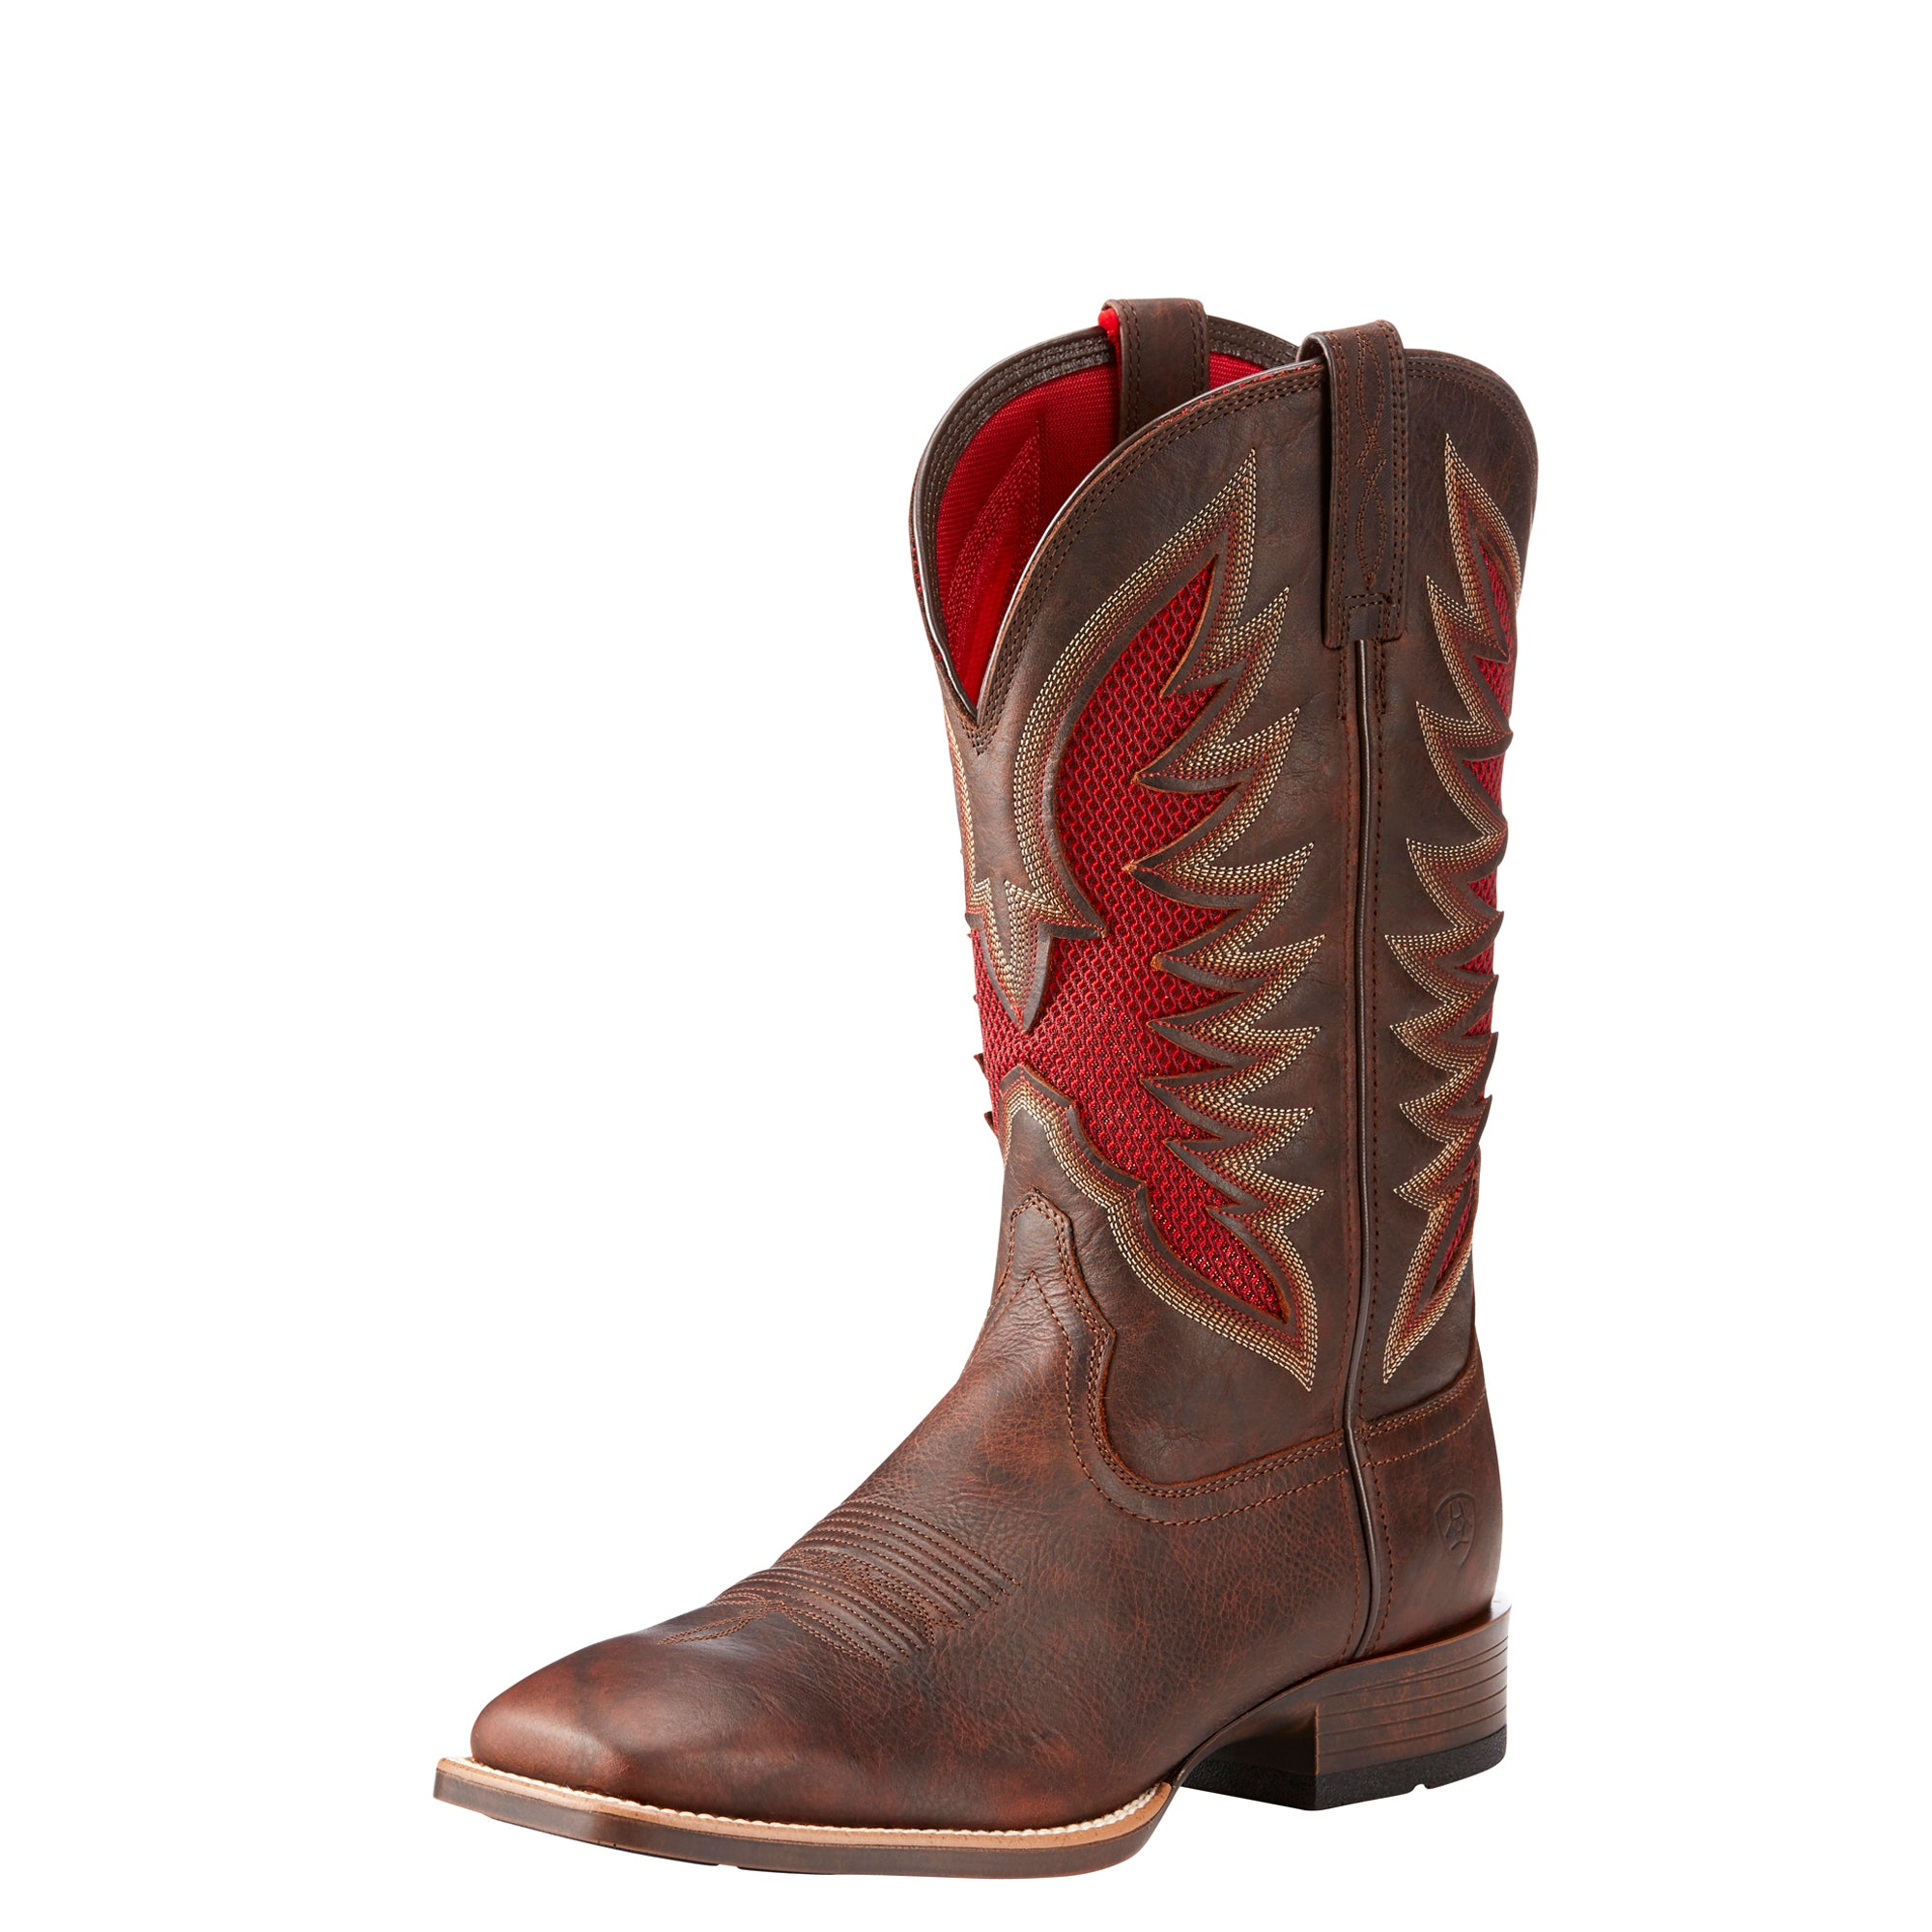 'Ariat' Men's Venttek Ultra - Brown / Red